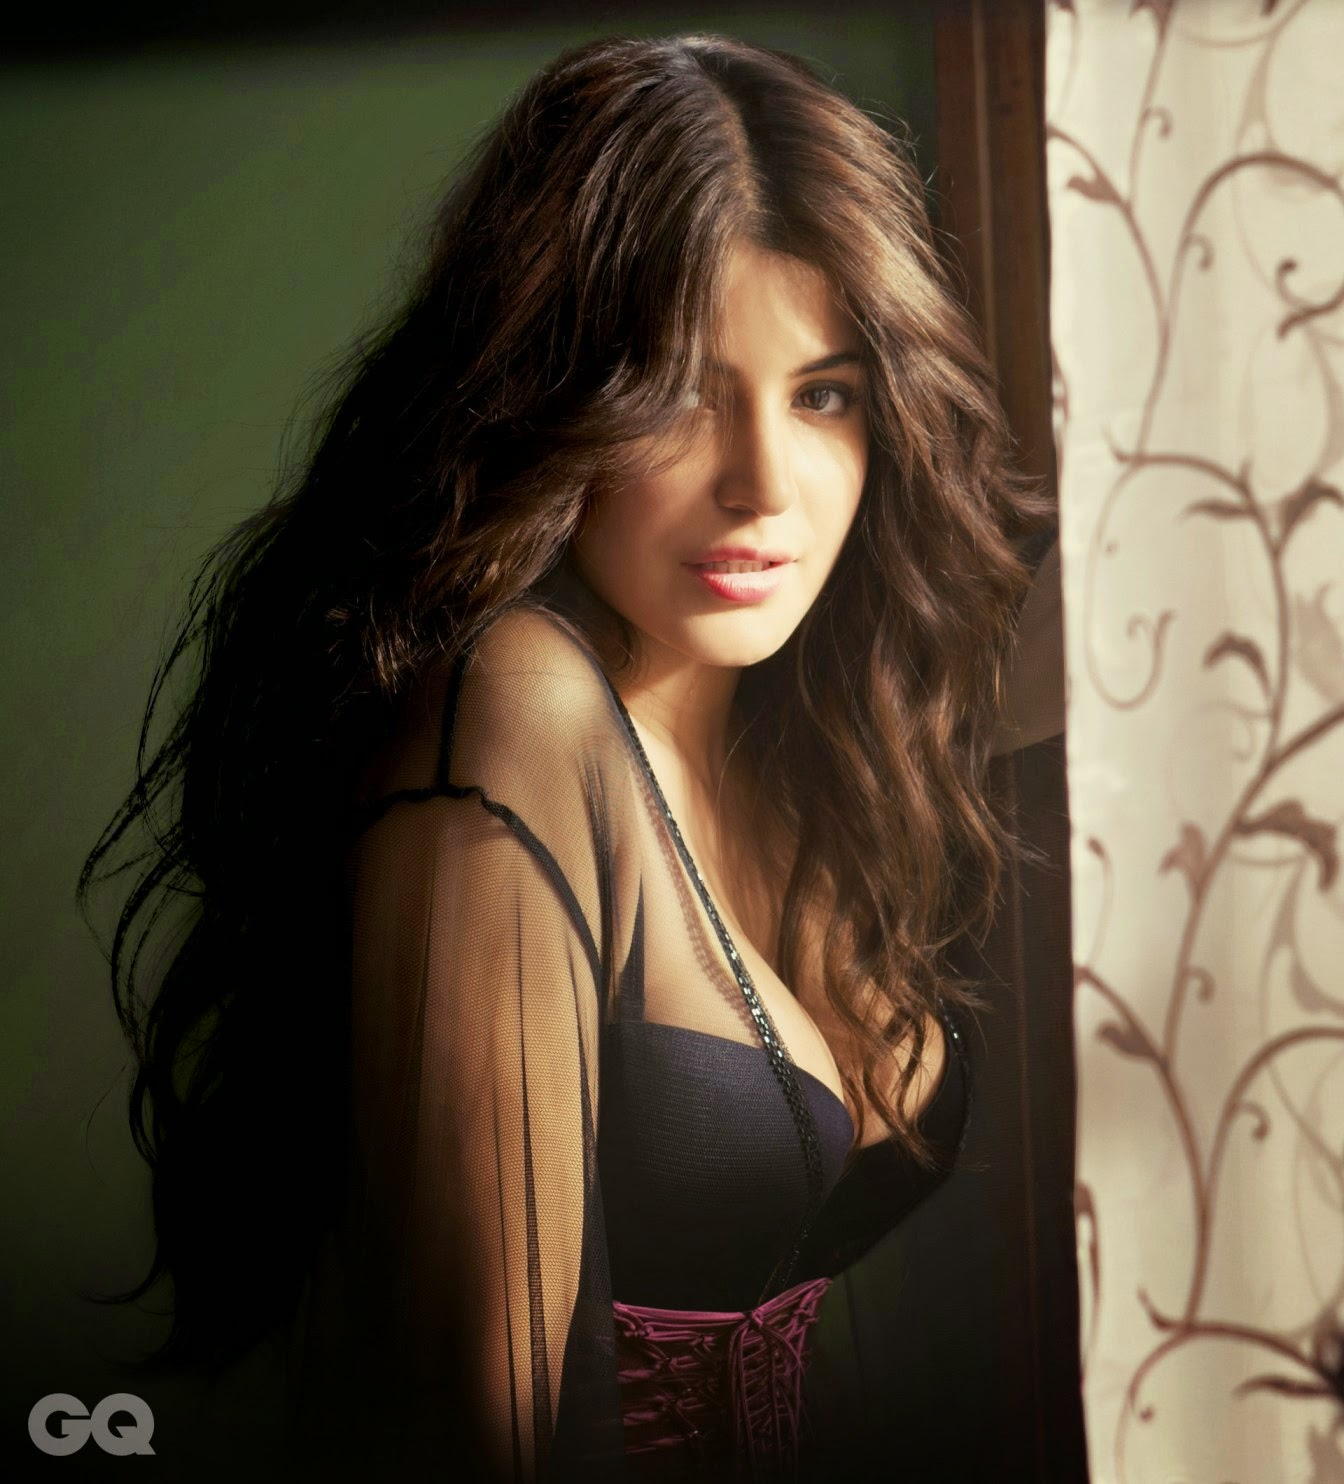 Anushka Sharma's Hottest GQ Photoshoot